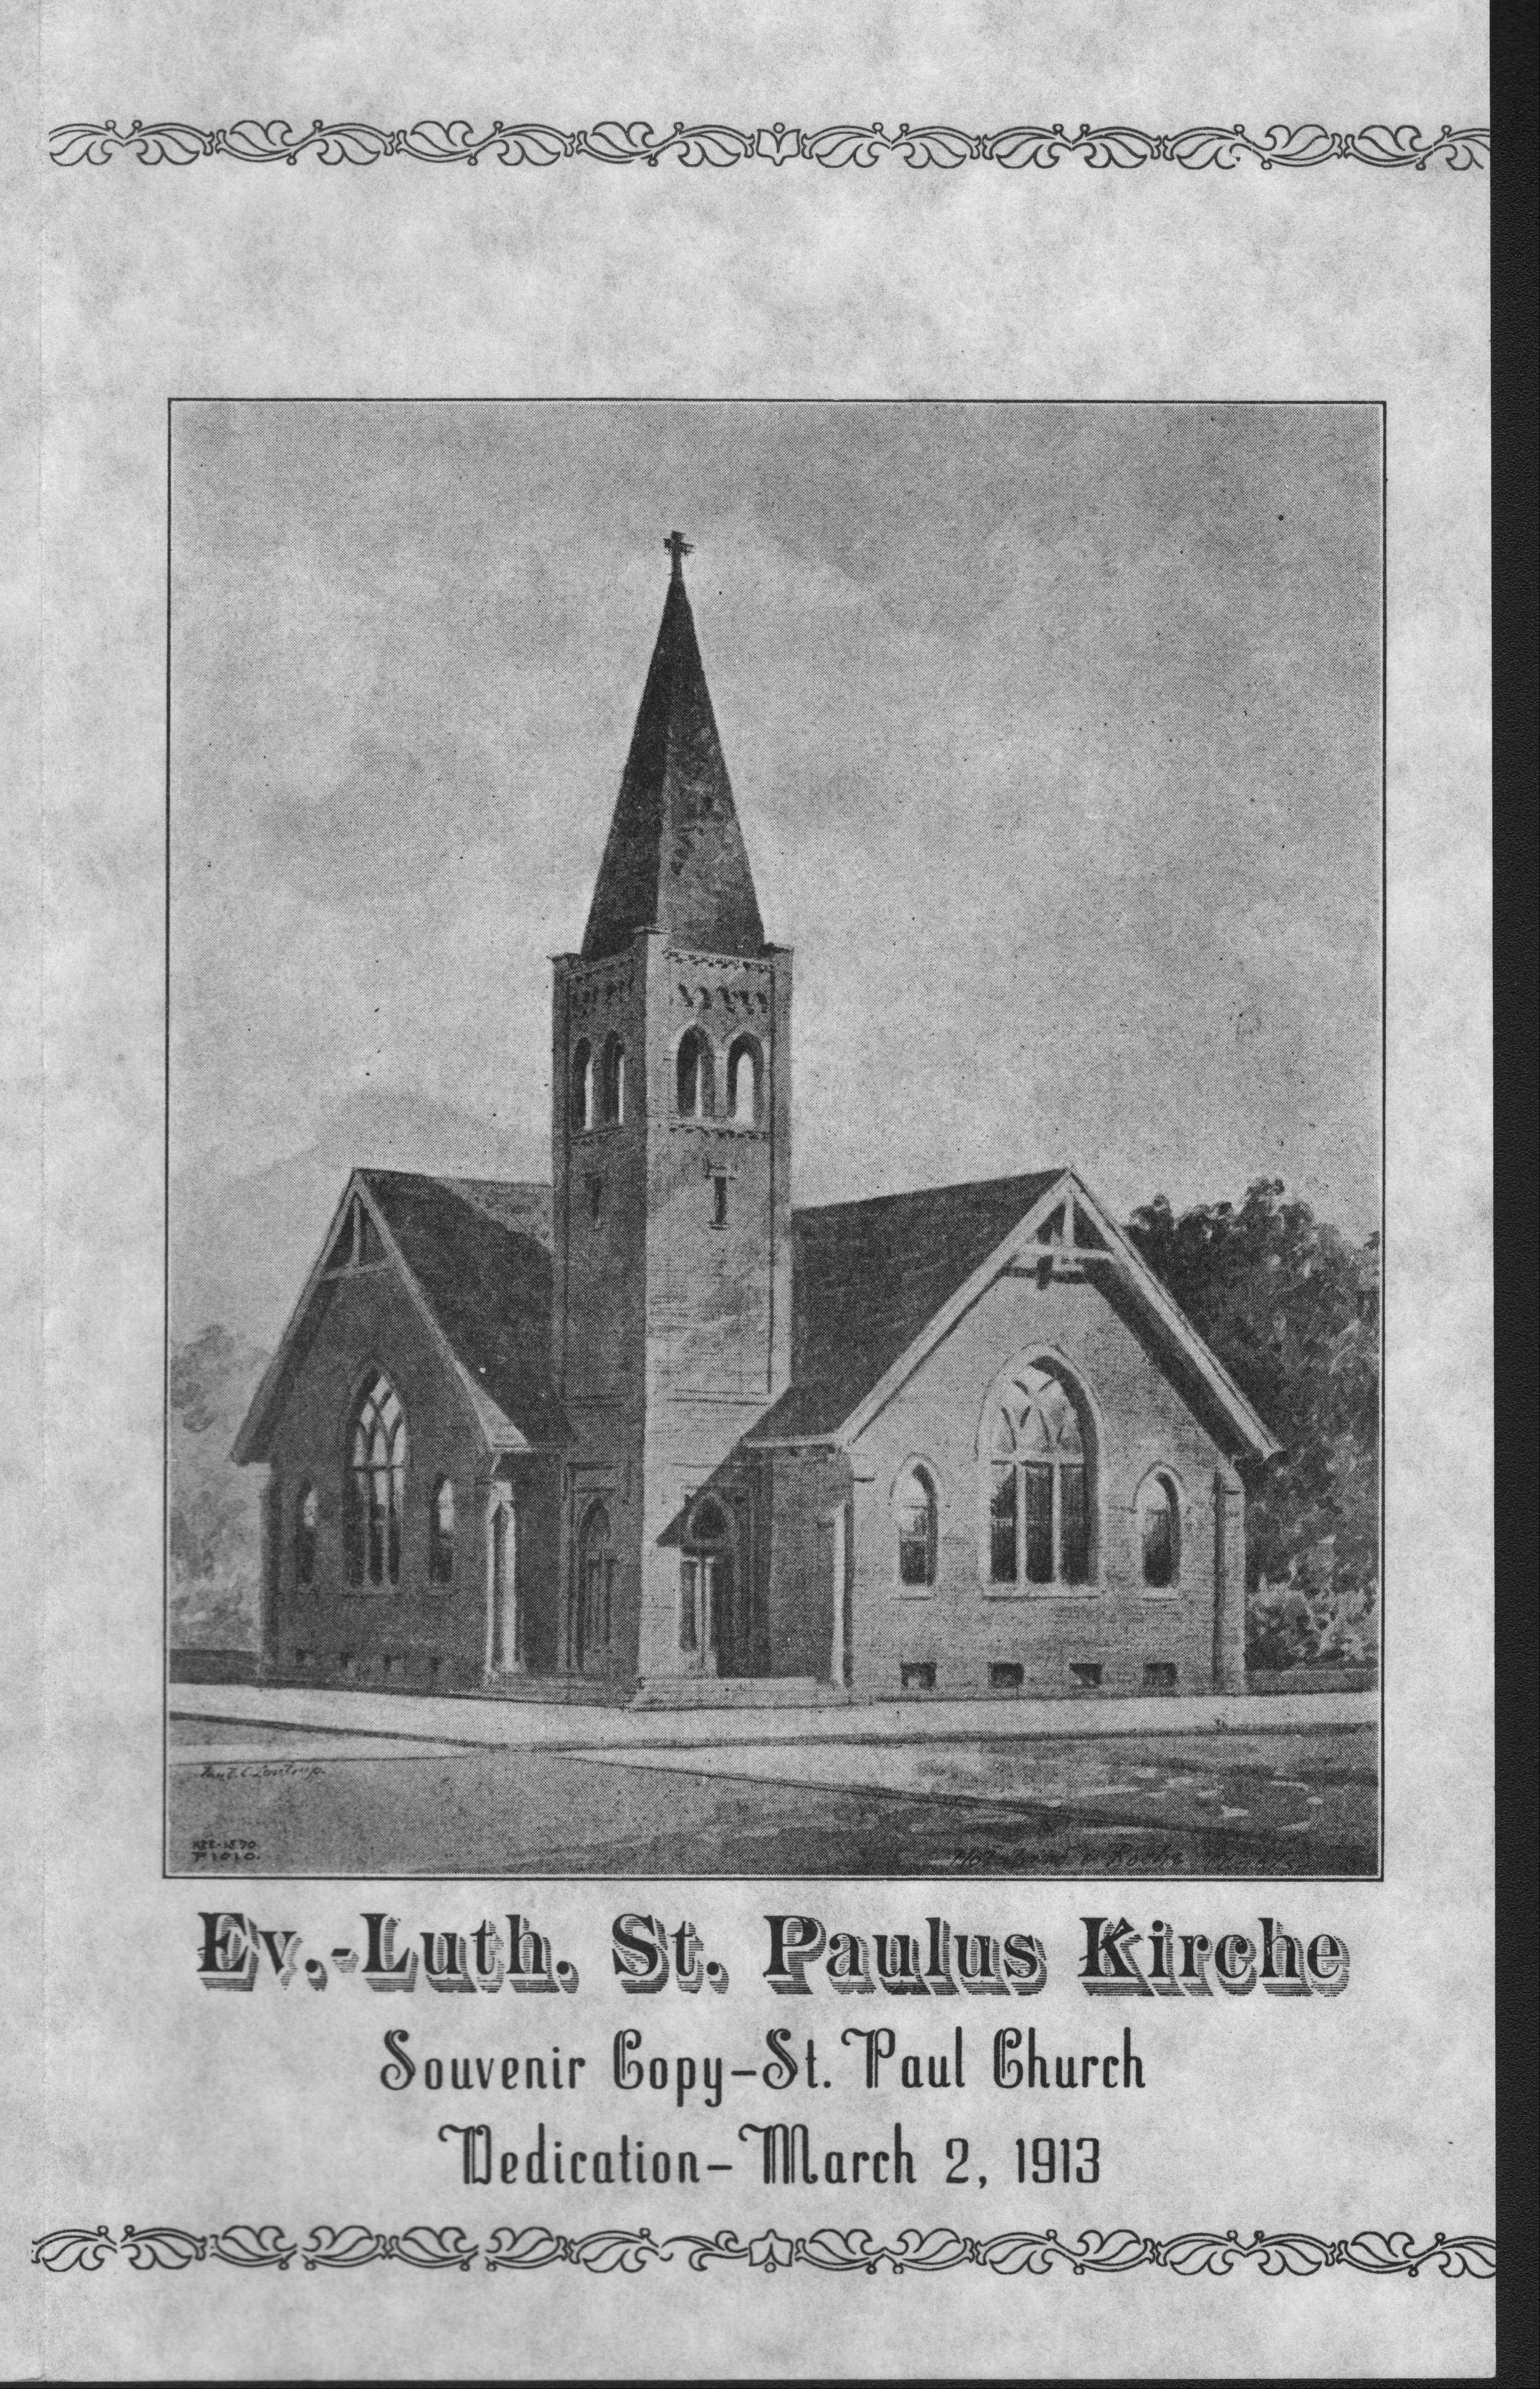 This is a flier for the dedication of St. Paul Lutheran Church's first building, which opened in 1913.